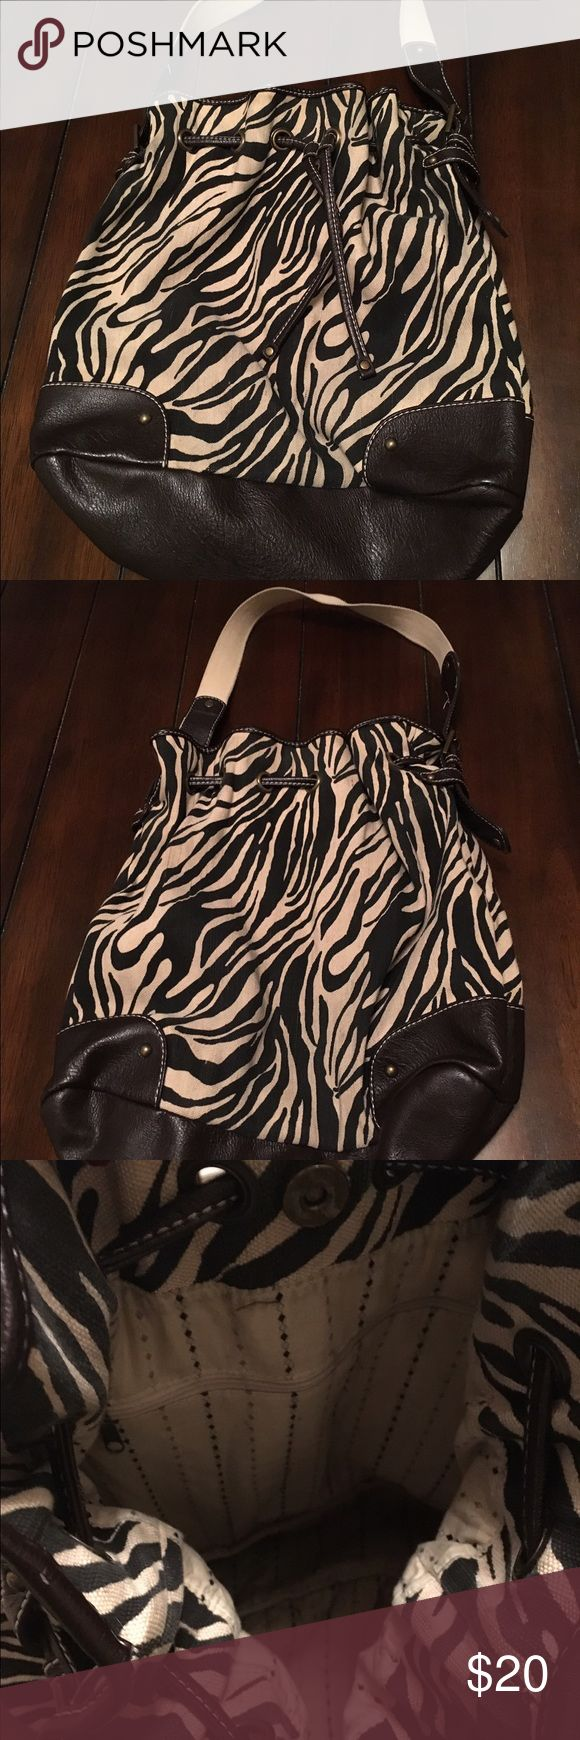 Banana Republic Zebra Bucket Tote Banana Republic bucket tote. Zebra print canvas with dark leather bottom. Adjustable canvas and leather strap. Inside is lined and has one zipper pocket. Leather drawstring and magnetic snap closure. This bag holds everything and looks cute doing it. Clean with no tears or stains or smells. Banana Republic Bags Shoulder Bags